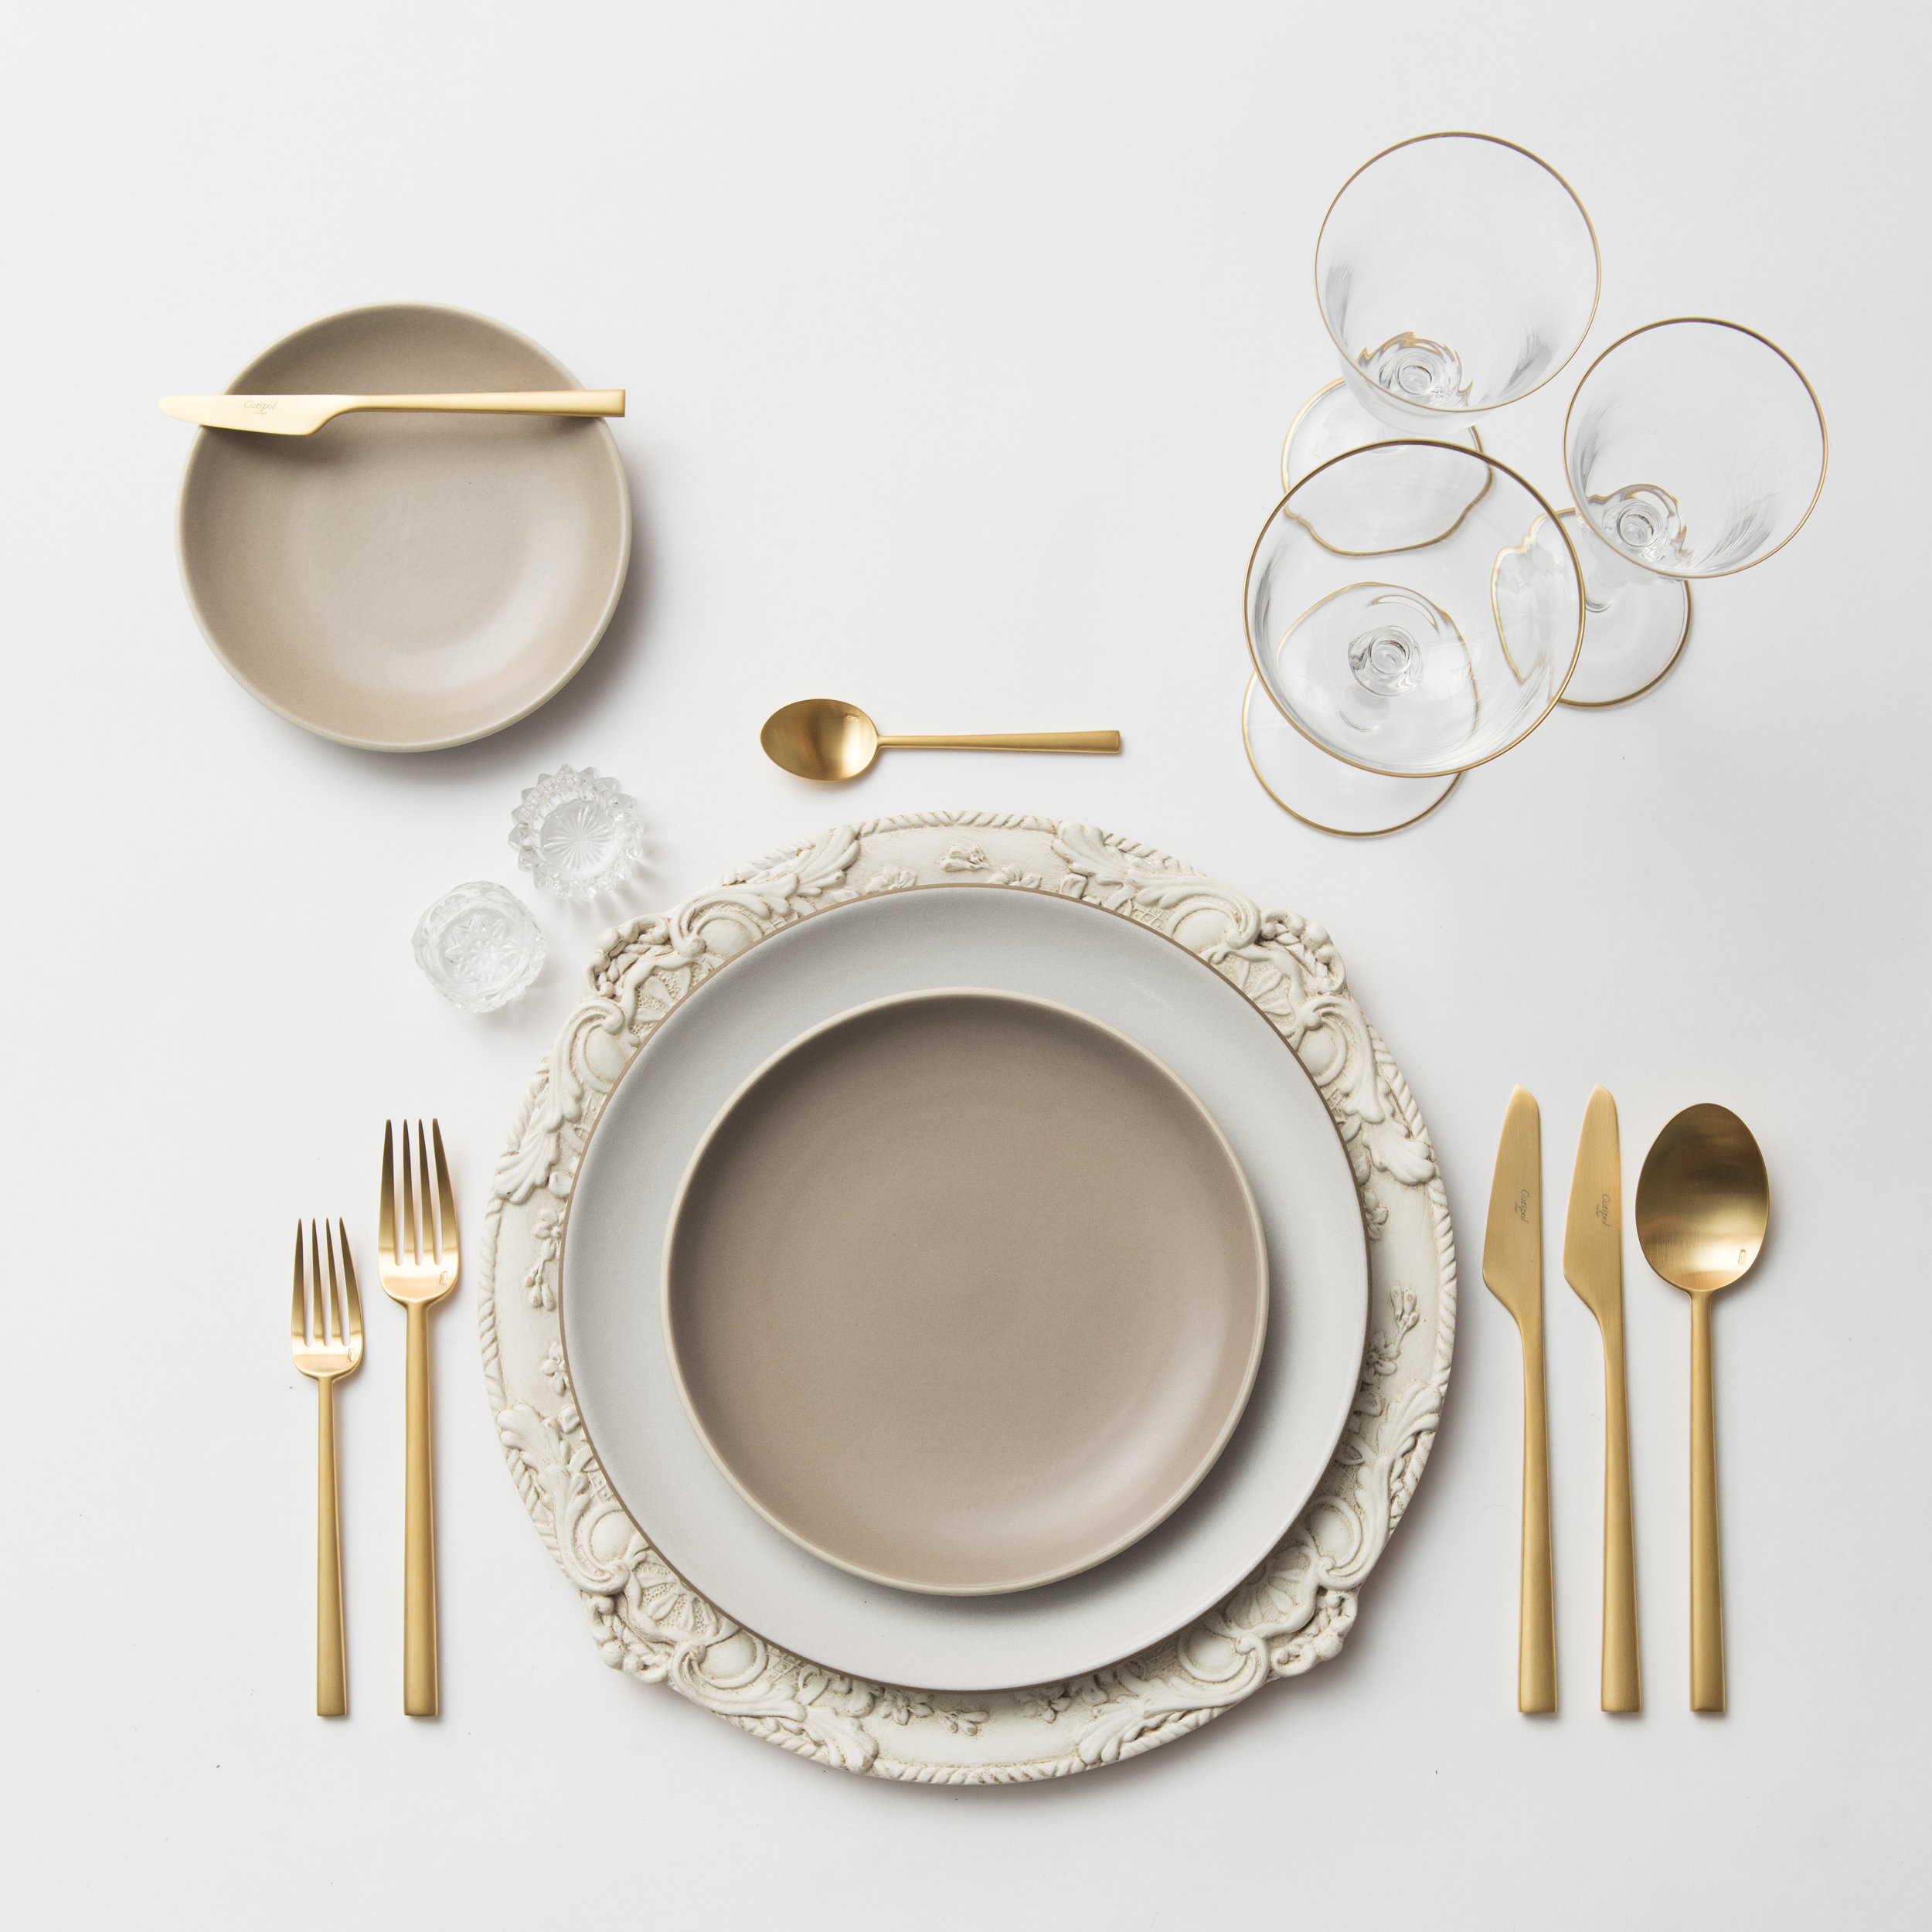 RENT: Verona Chargers in Antique White + Heath Ceramics in Opaque White/French Grey + Rondo Flatware in Brushed 24k Gold + Chloe 24k Gold Rimmed Stemware + Antique Crystal Salt Cellars  SHOP: Verona Chargers in Antique White + Rondo Flatware in Brushed 24k Gold + Chloe 24k Gold Rimmed Stemware